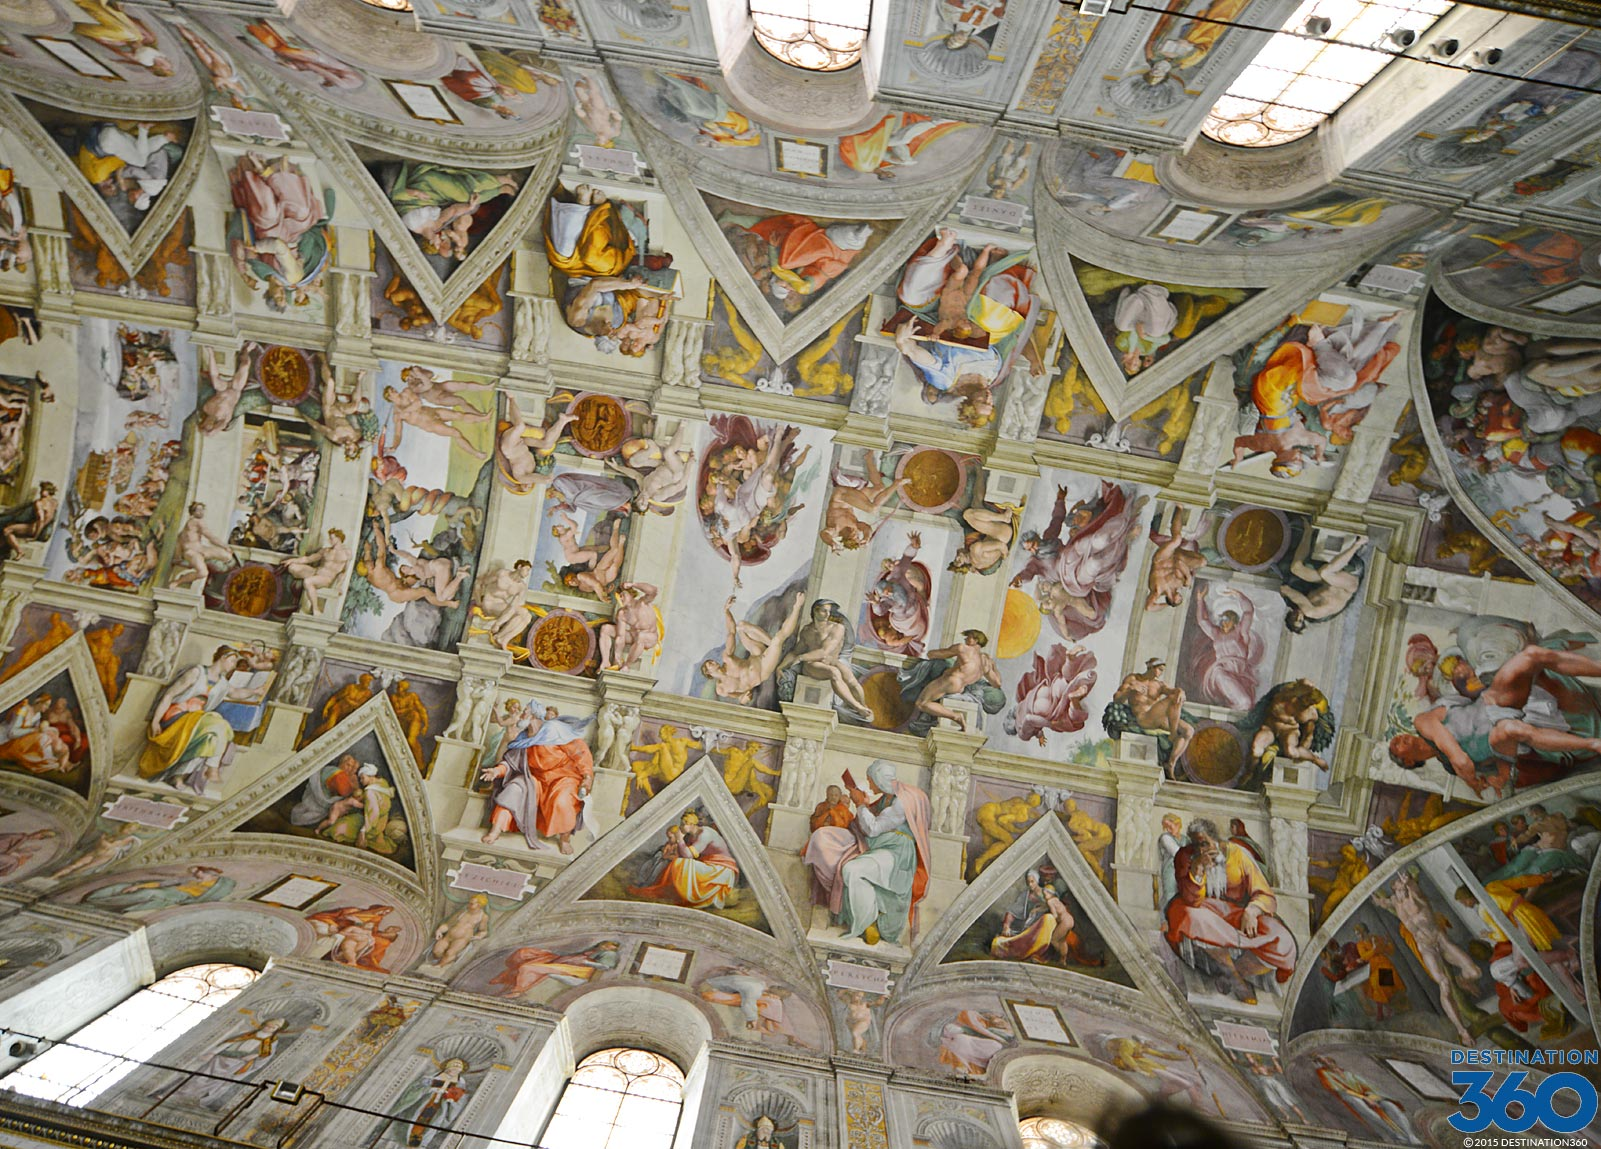 sistine chapel ceiling - michelangelo paintings in the sistine chapel